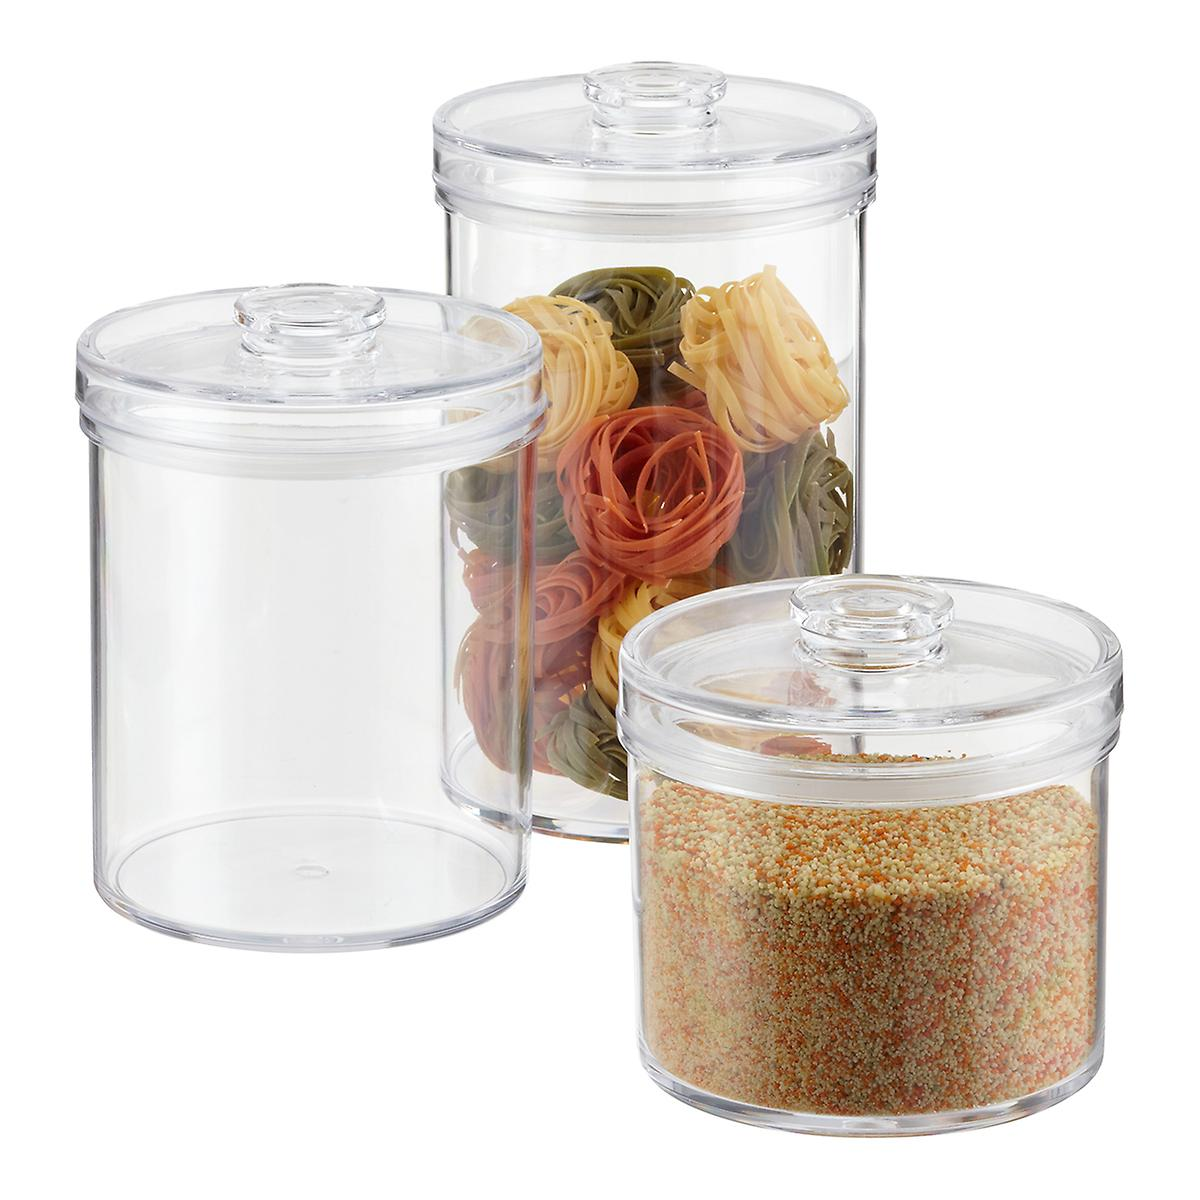 acrylic canisters clear round acrylic canisters the container clear round acrylic canisters